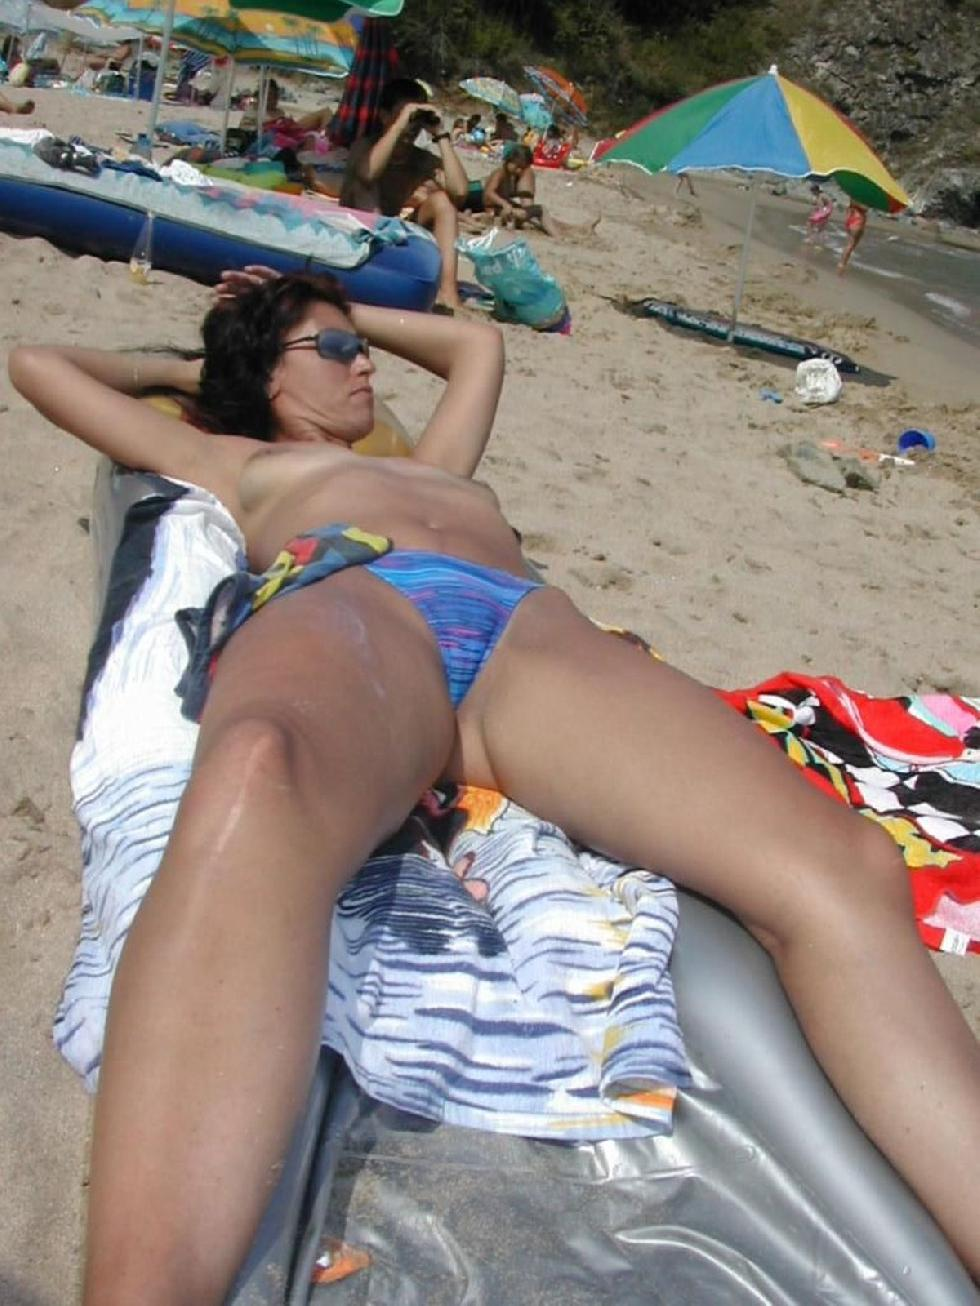 Topless and nude amateurs on the beach. Part 1 - 13